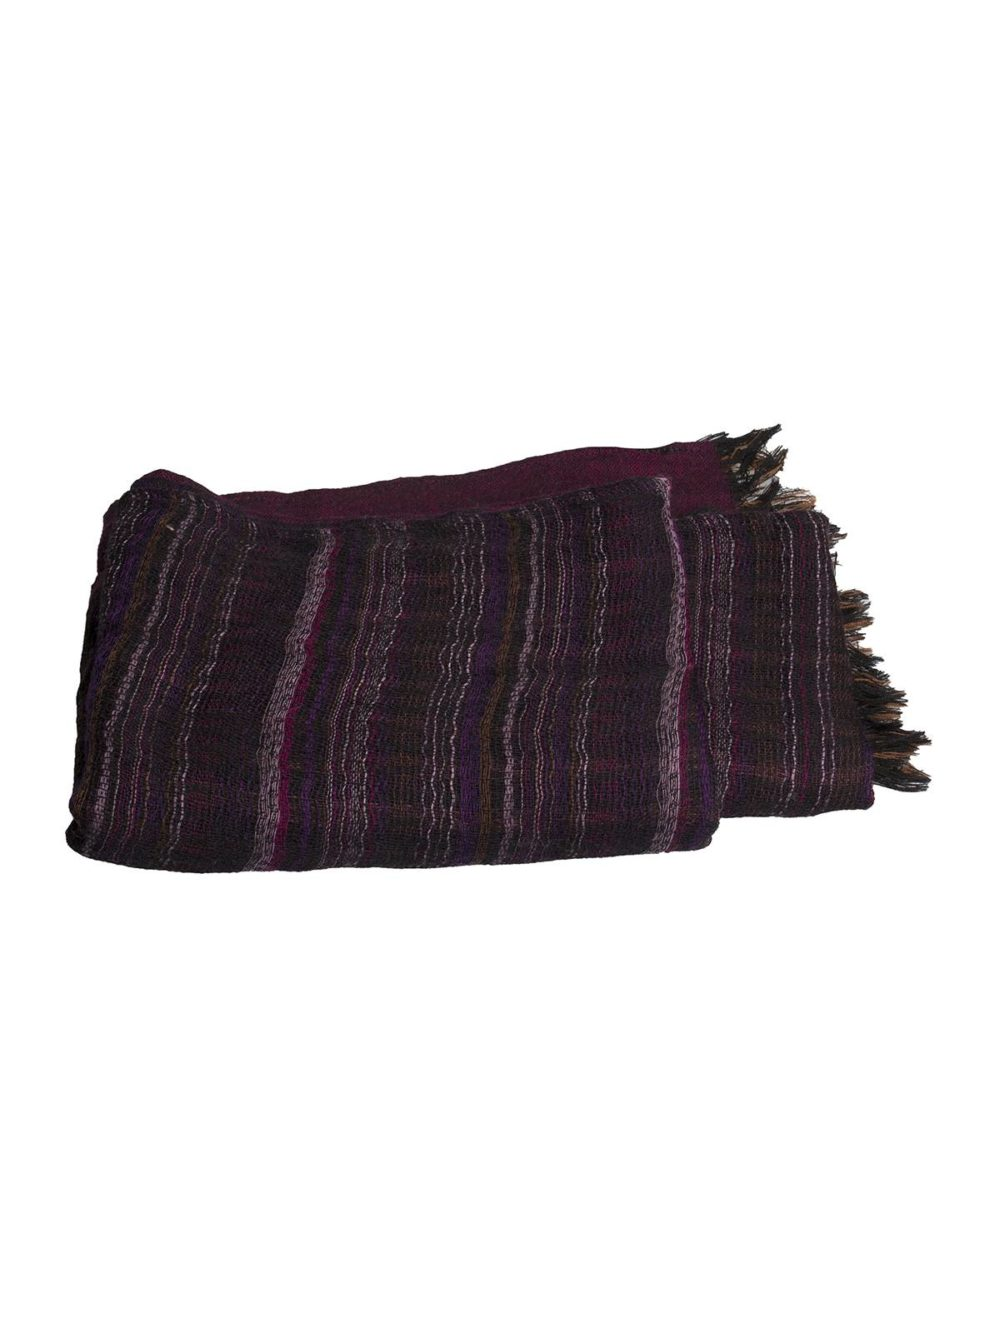 SCOTT3 Scarf Purple manicay Katie Kerr Women's Accessories Women's Clothing